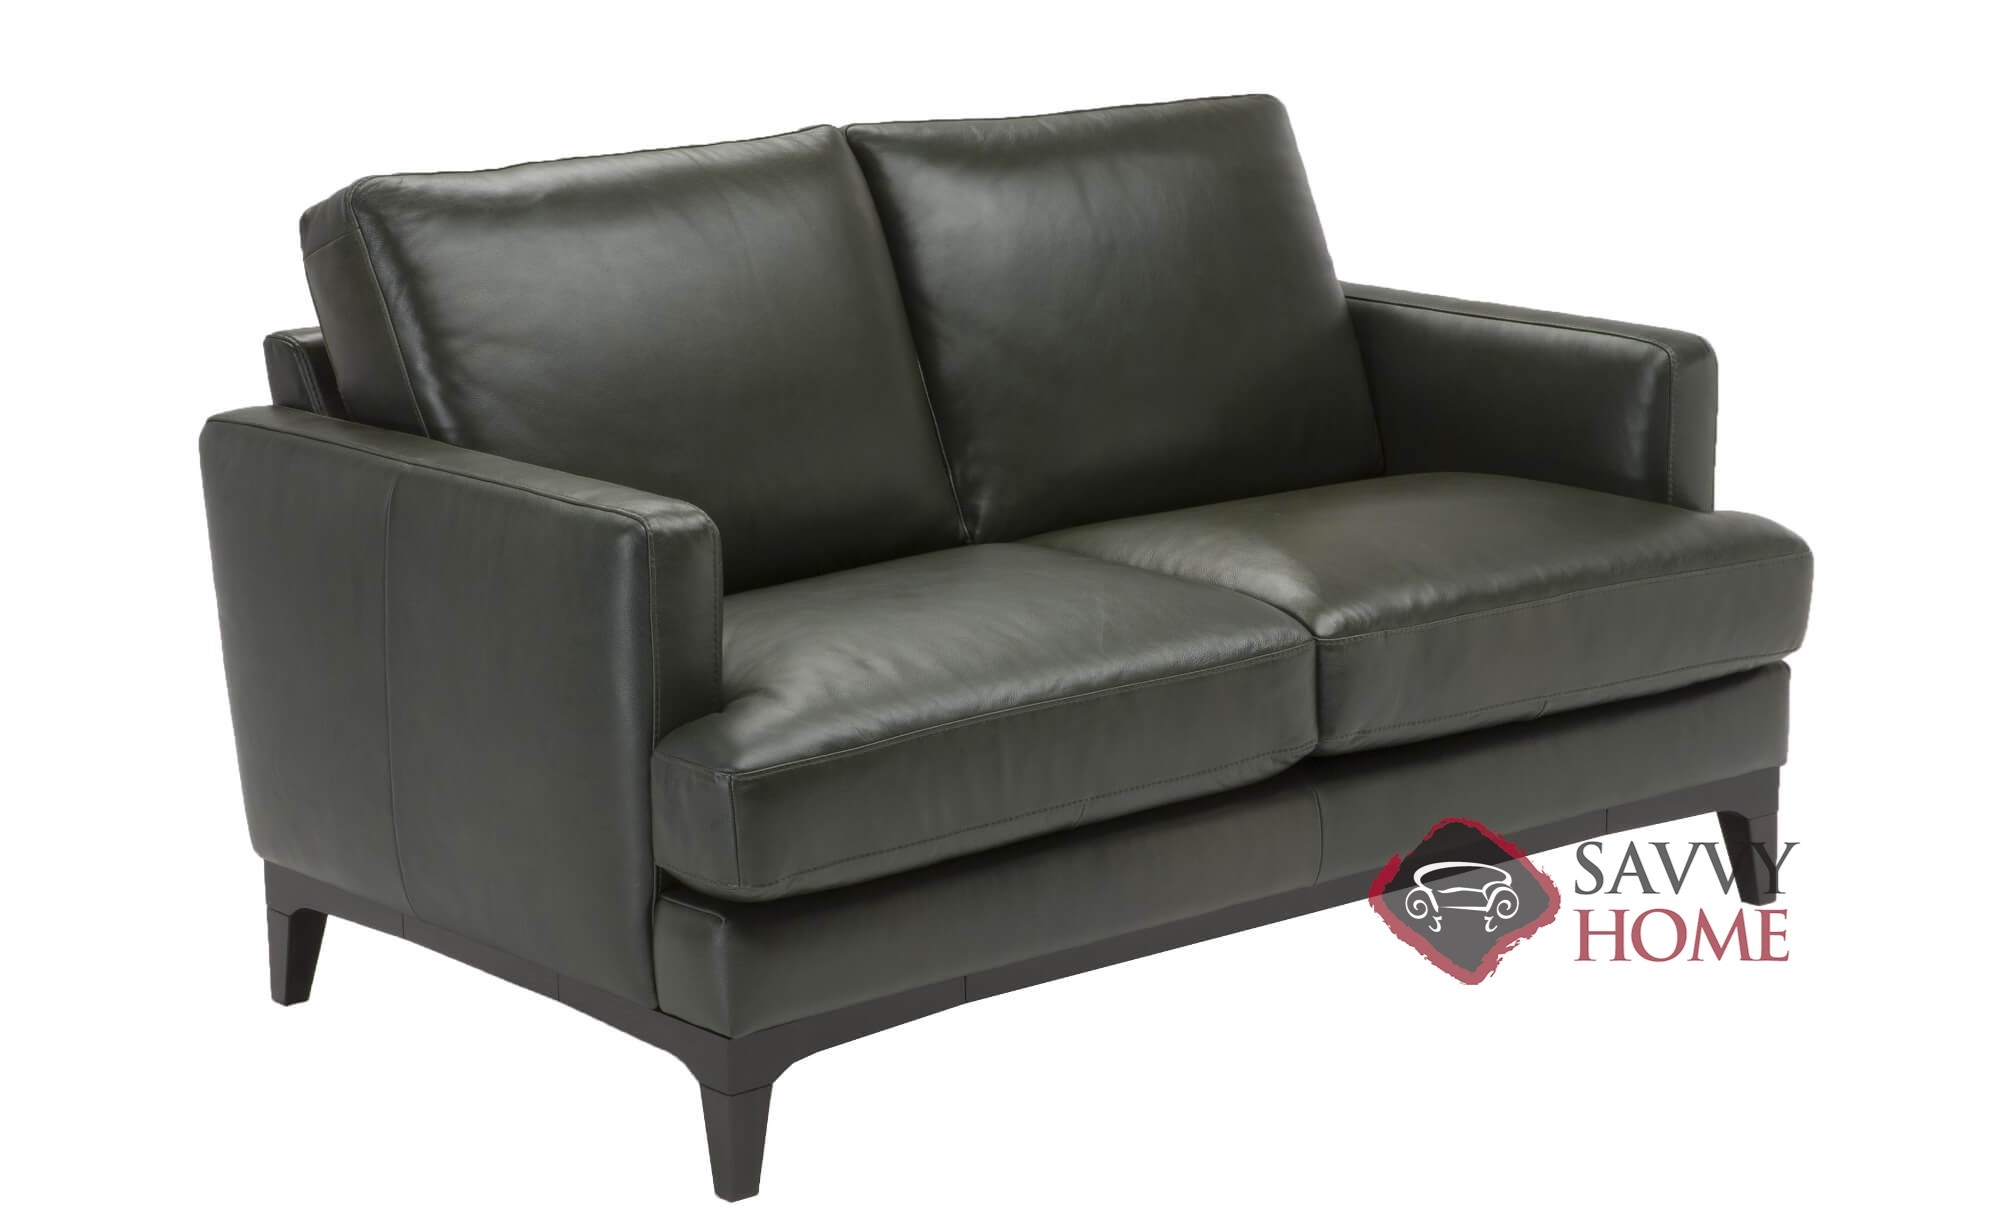 Strange Bevera Leather Loveseat By Natuzzi Editions B970 005 Andrewgaddart Wooden Chair Designs For Living Room Andrewgaddartcom